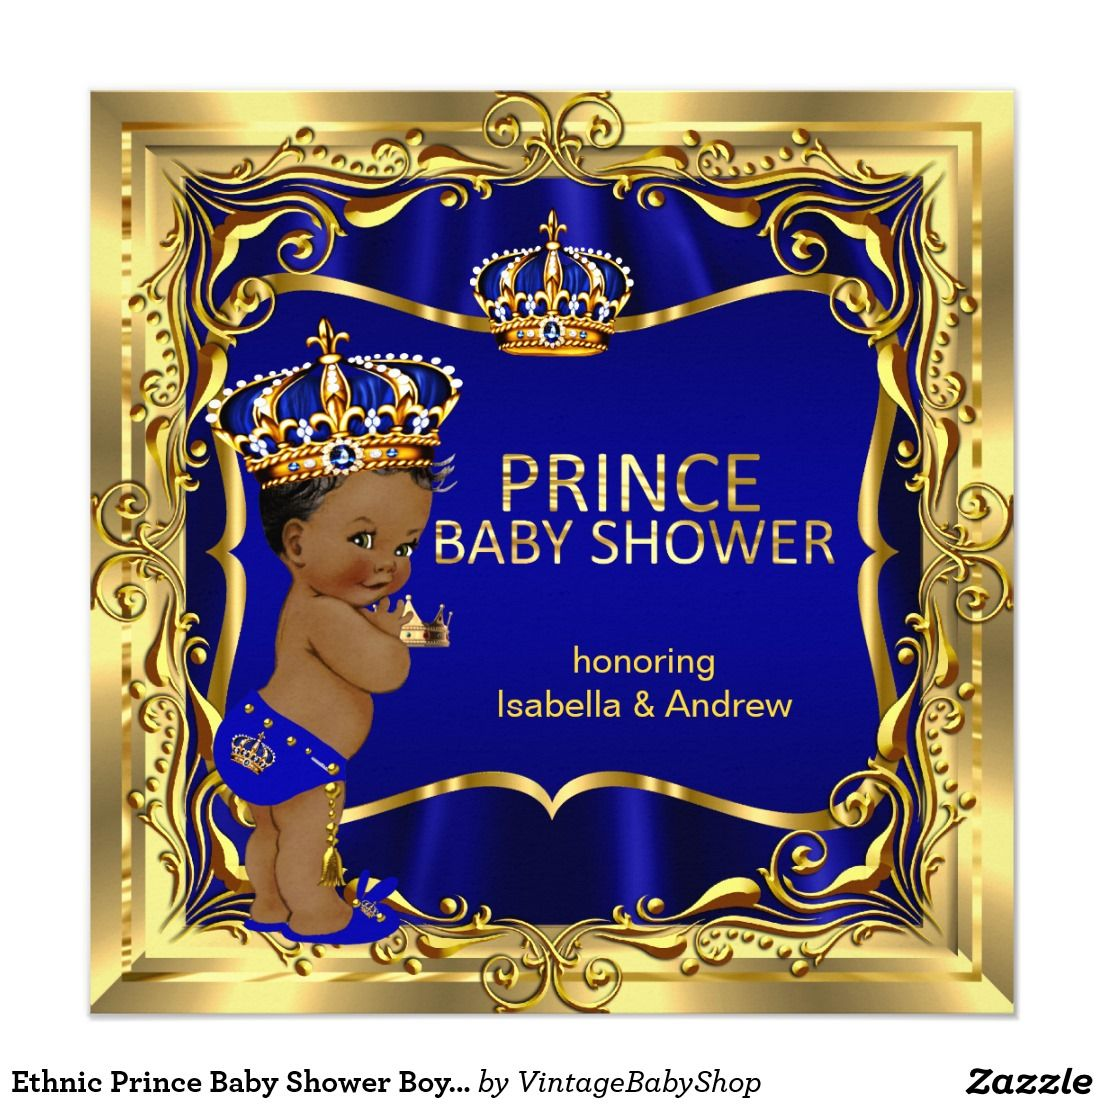 Baby Shops Helensvale Ethnic Prince Baby Shower Boy Blue Gold Invitation Baby Shower